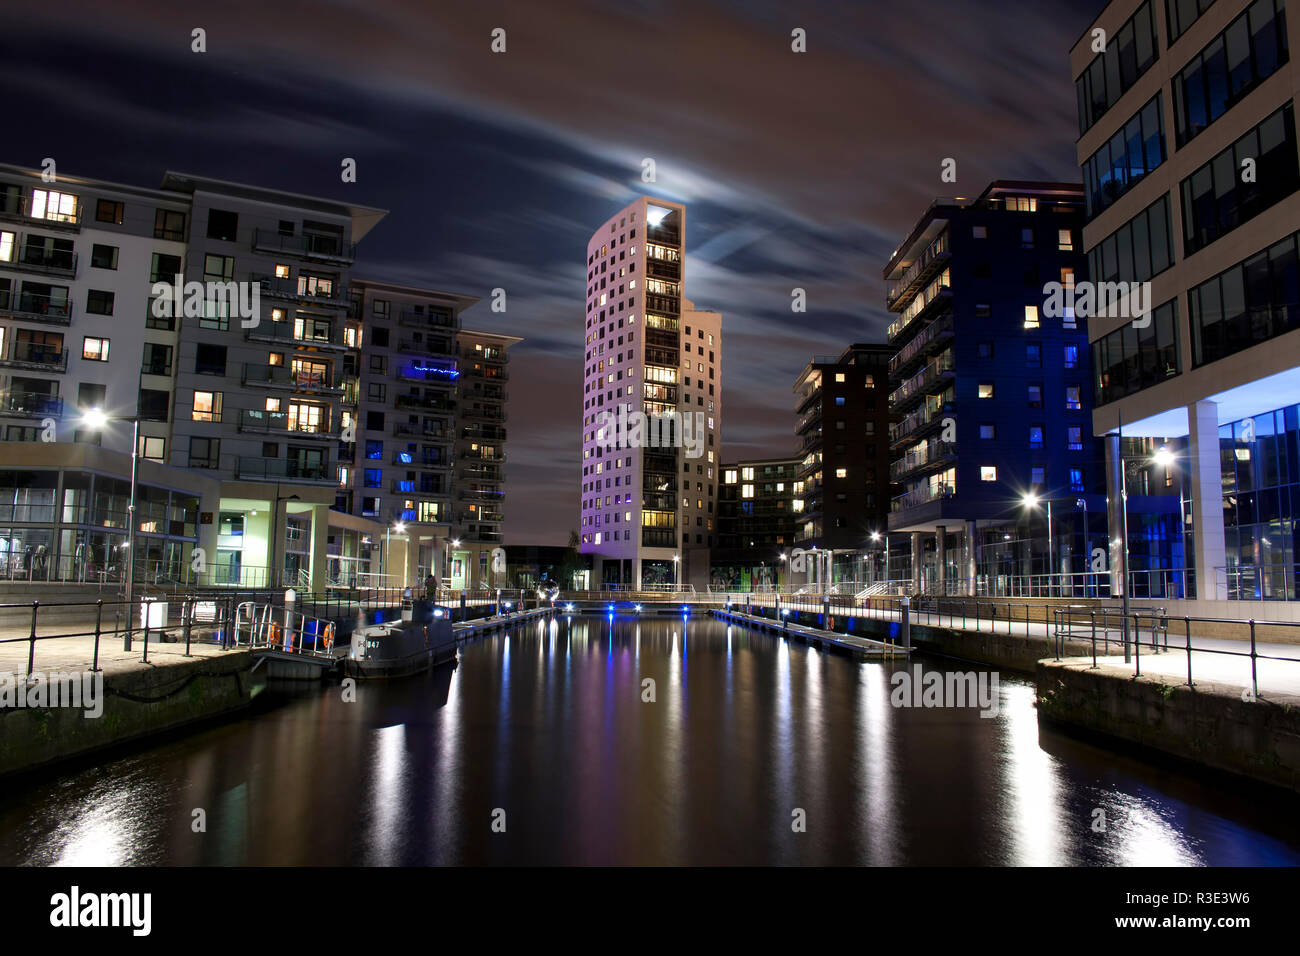 Clarence Dock in Leeds,West Yorkshire at night time. - Stock Image